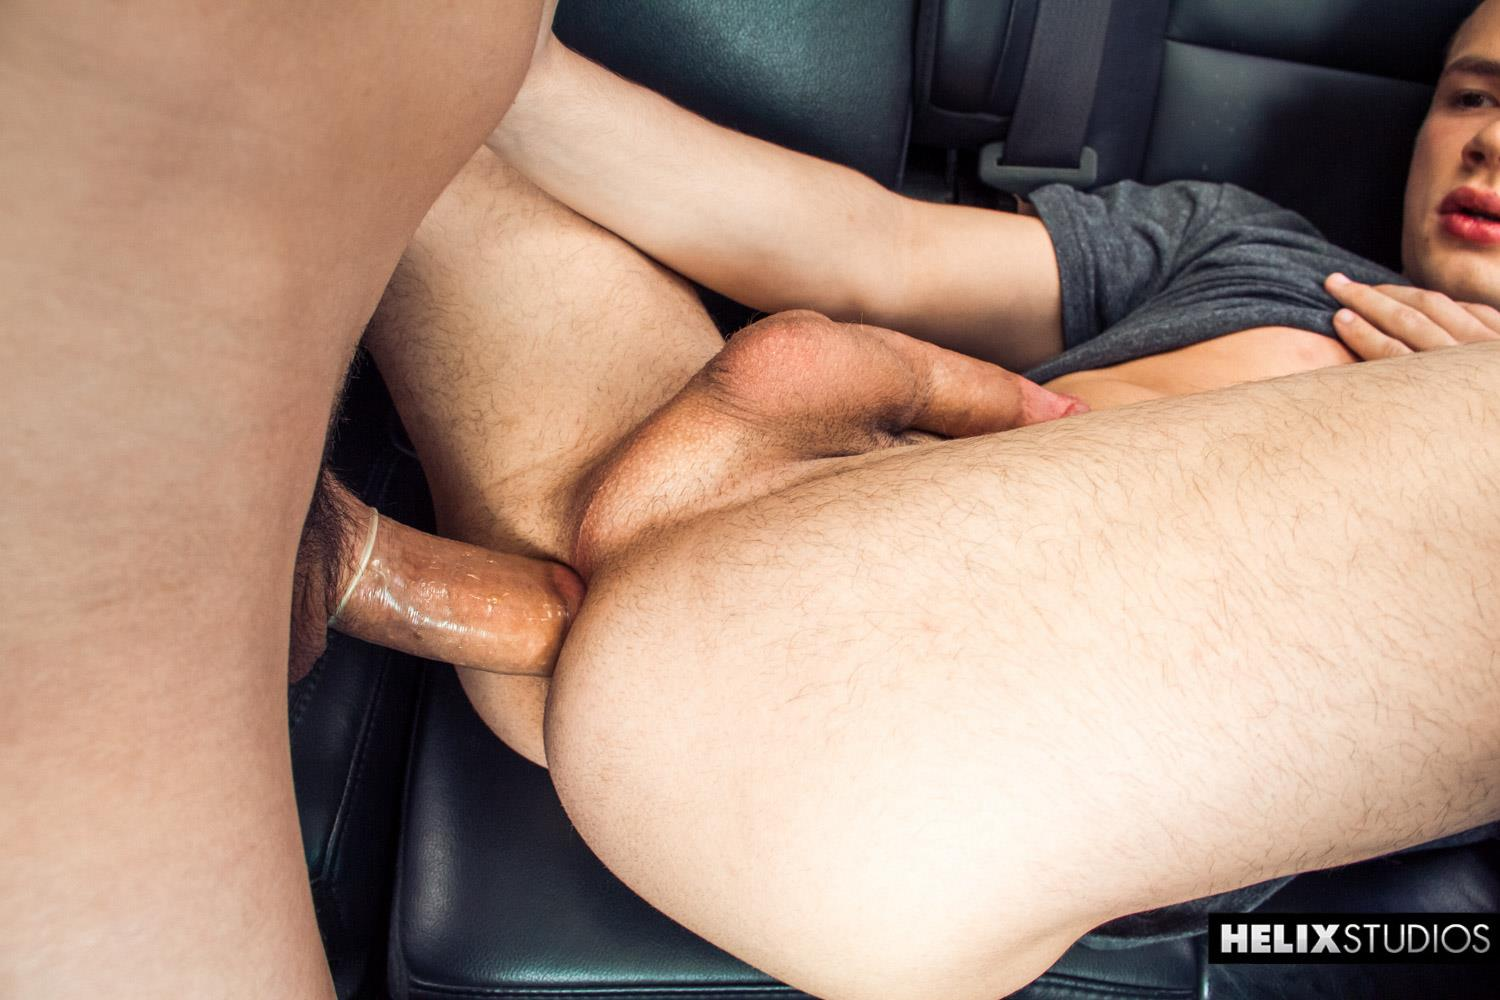 Helix Studios Troy Ryan and Logan Cross Big Cock Twinks Fucking In A Car Amateur Gay Porn 21